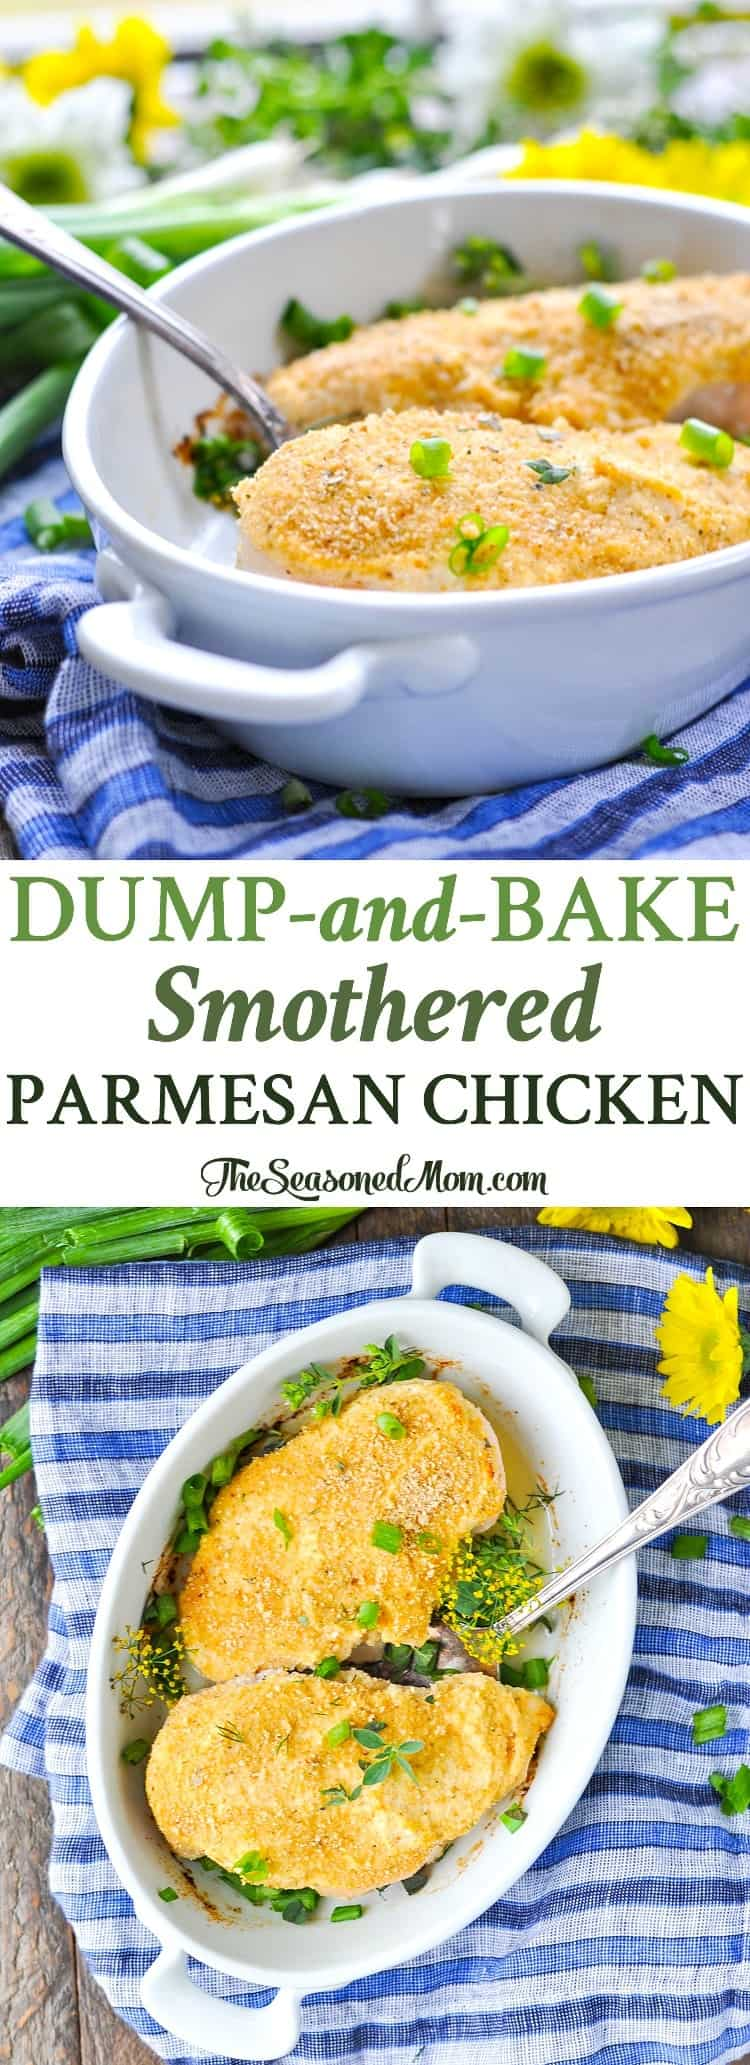 This Dump-and-Bake Smothered Parmesan Chicken is an easy dinner that comes together in just 5 minutes! Baked Chicken | Chicken Breast Recipes | Healthy Dinner Recipes